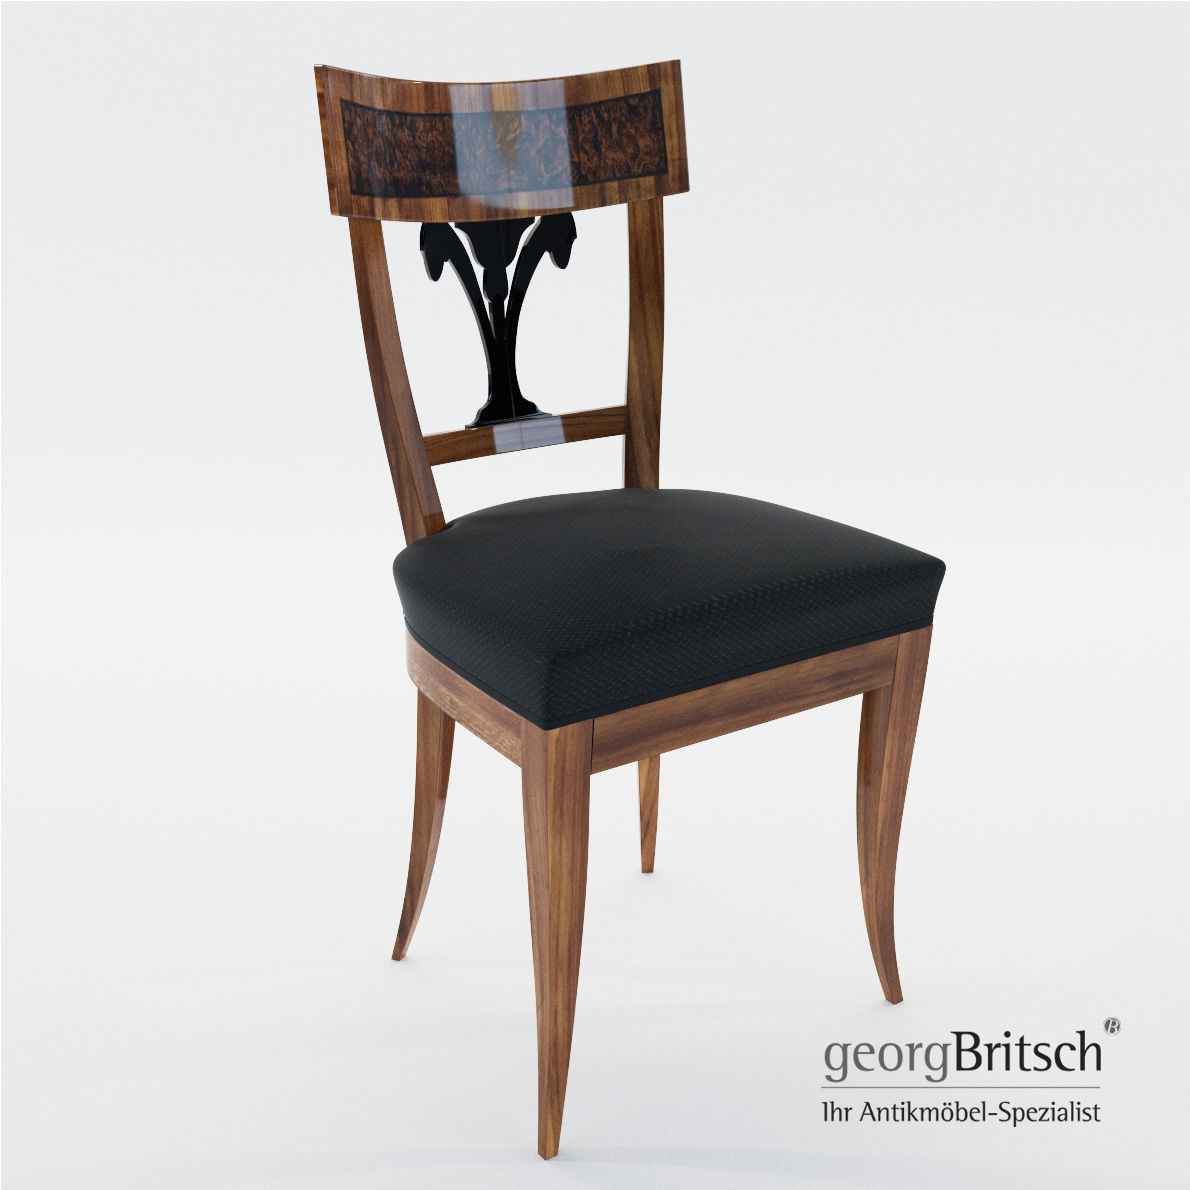 Biedermeier Chair   South Germany   Munich 1815   Georg Britsch 3d Model  Max Obj Mtl ...